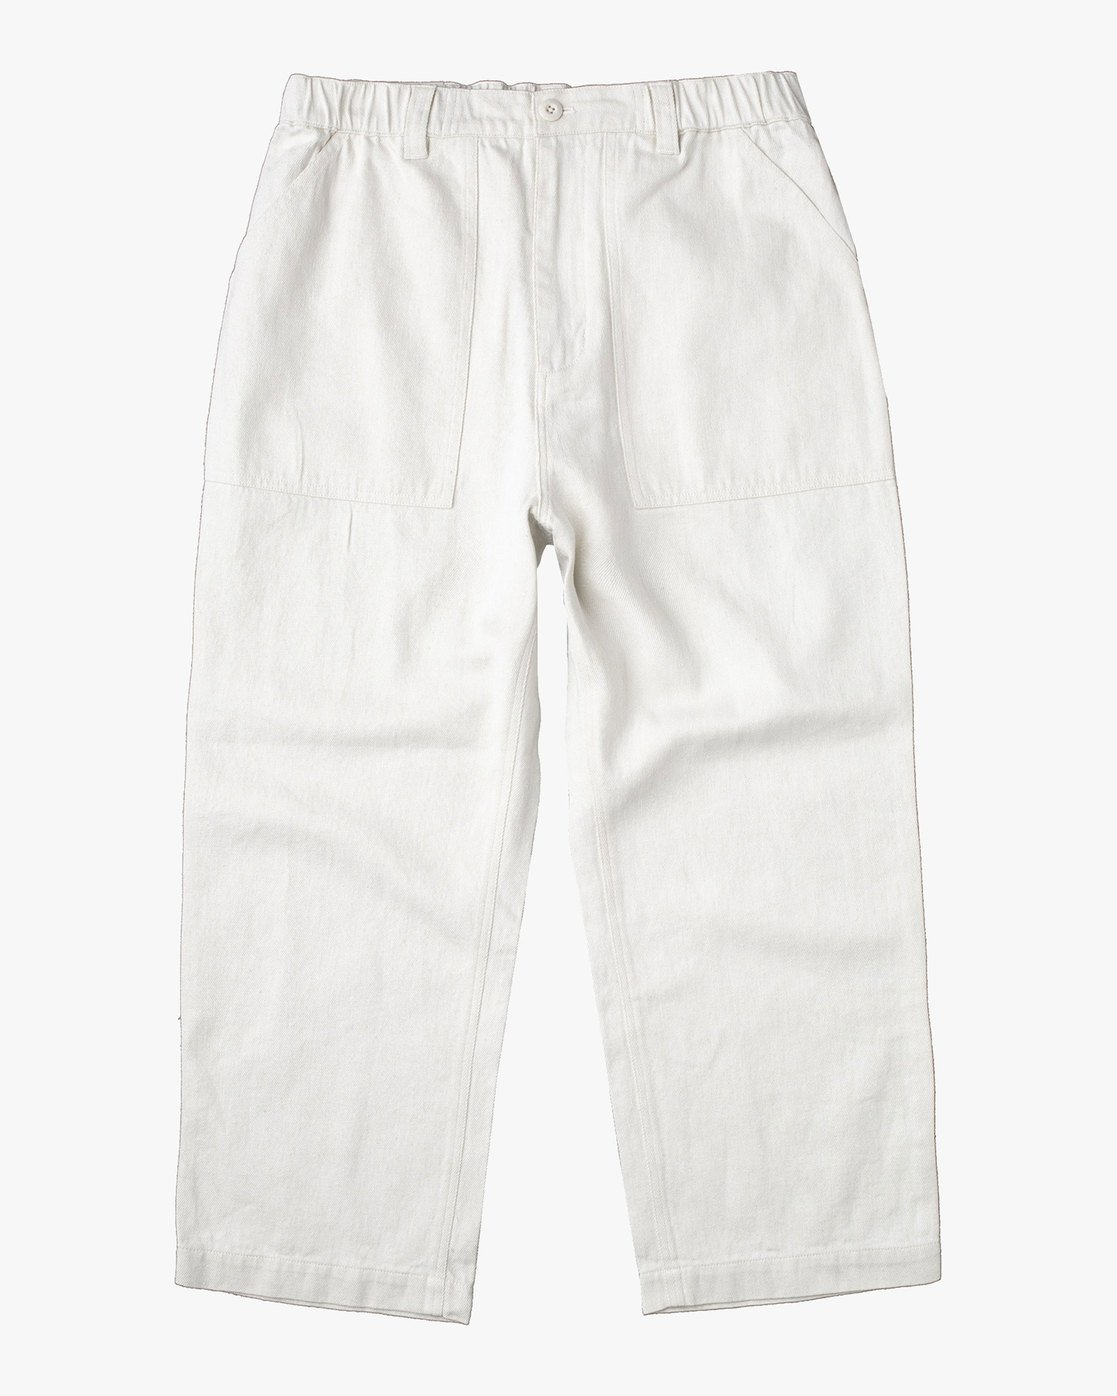 0 NEUTRAL HEMP RELAXED FIT PANT  AVYNP00103 RVCA